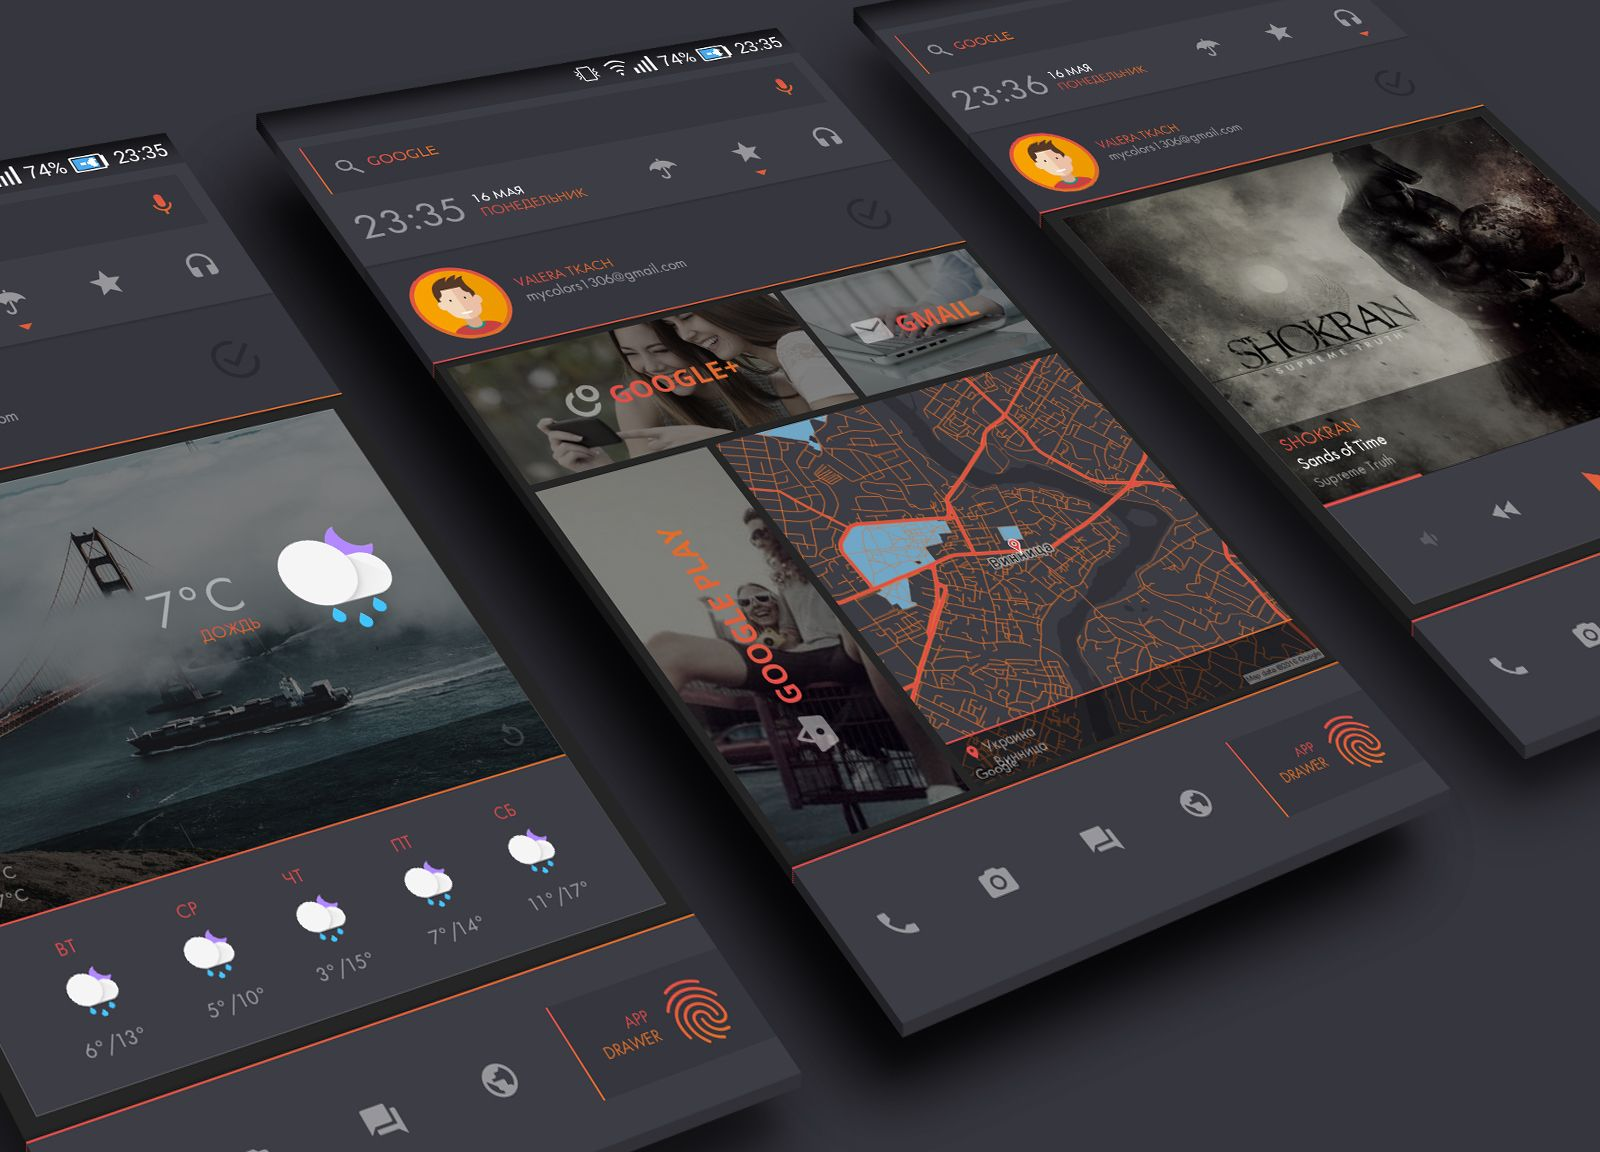 DarkDessert Theme for KLWP Android Homescreen